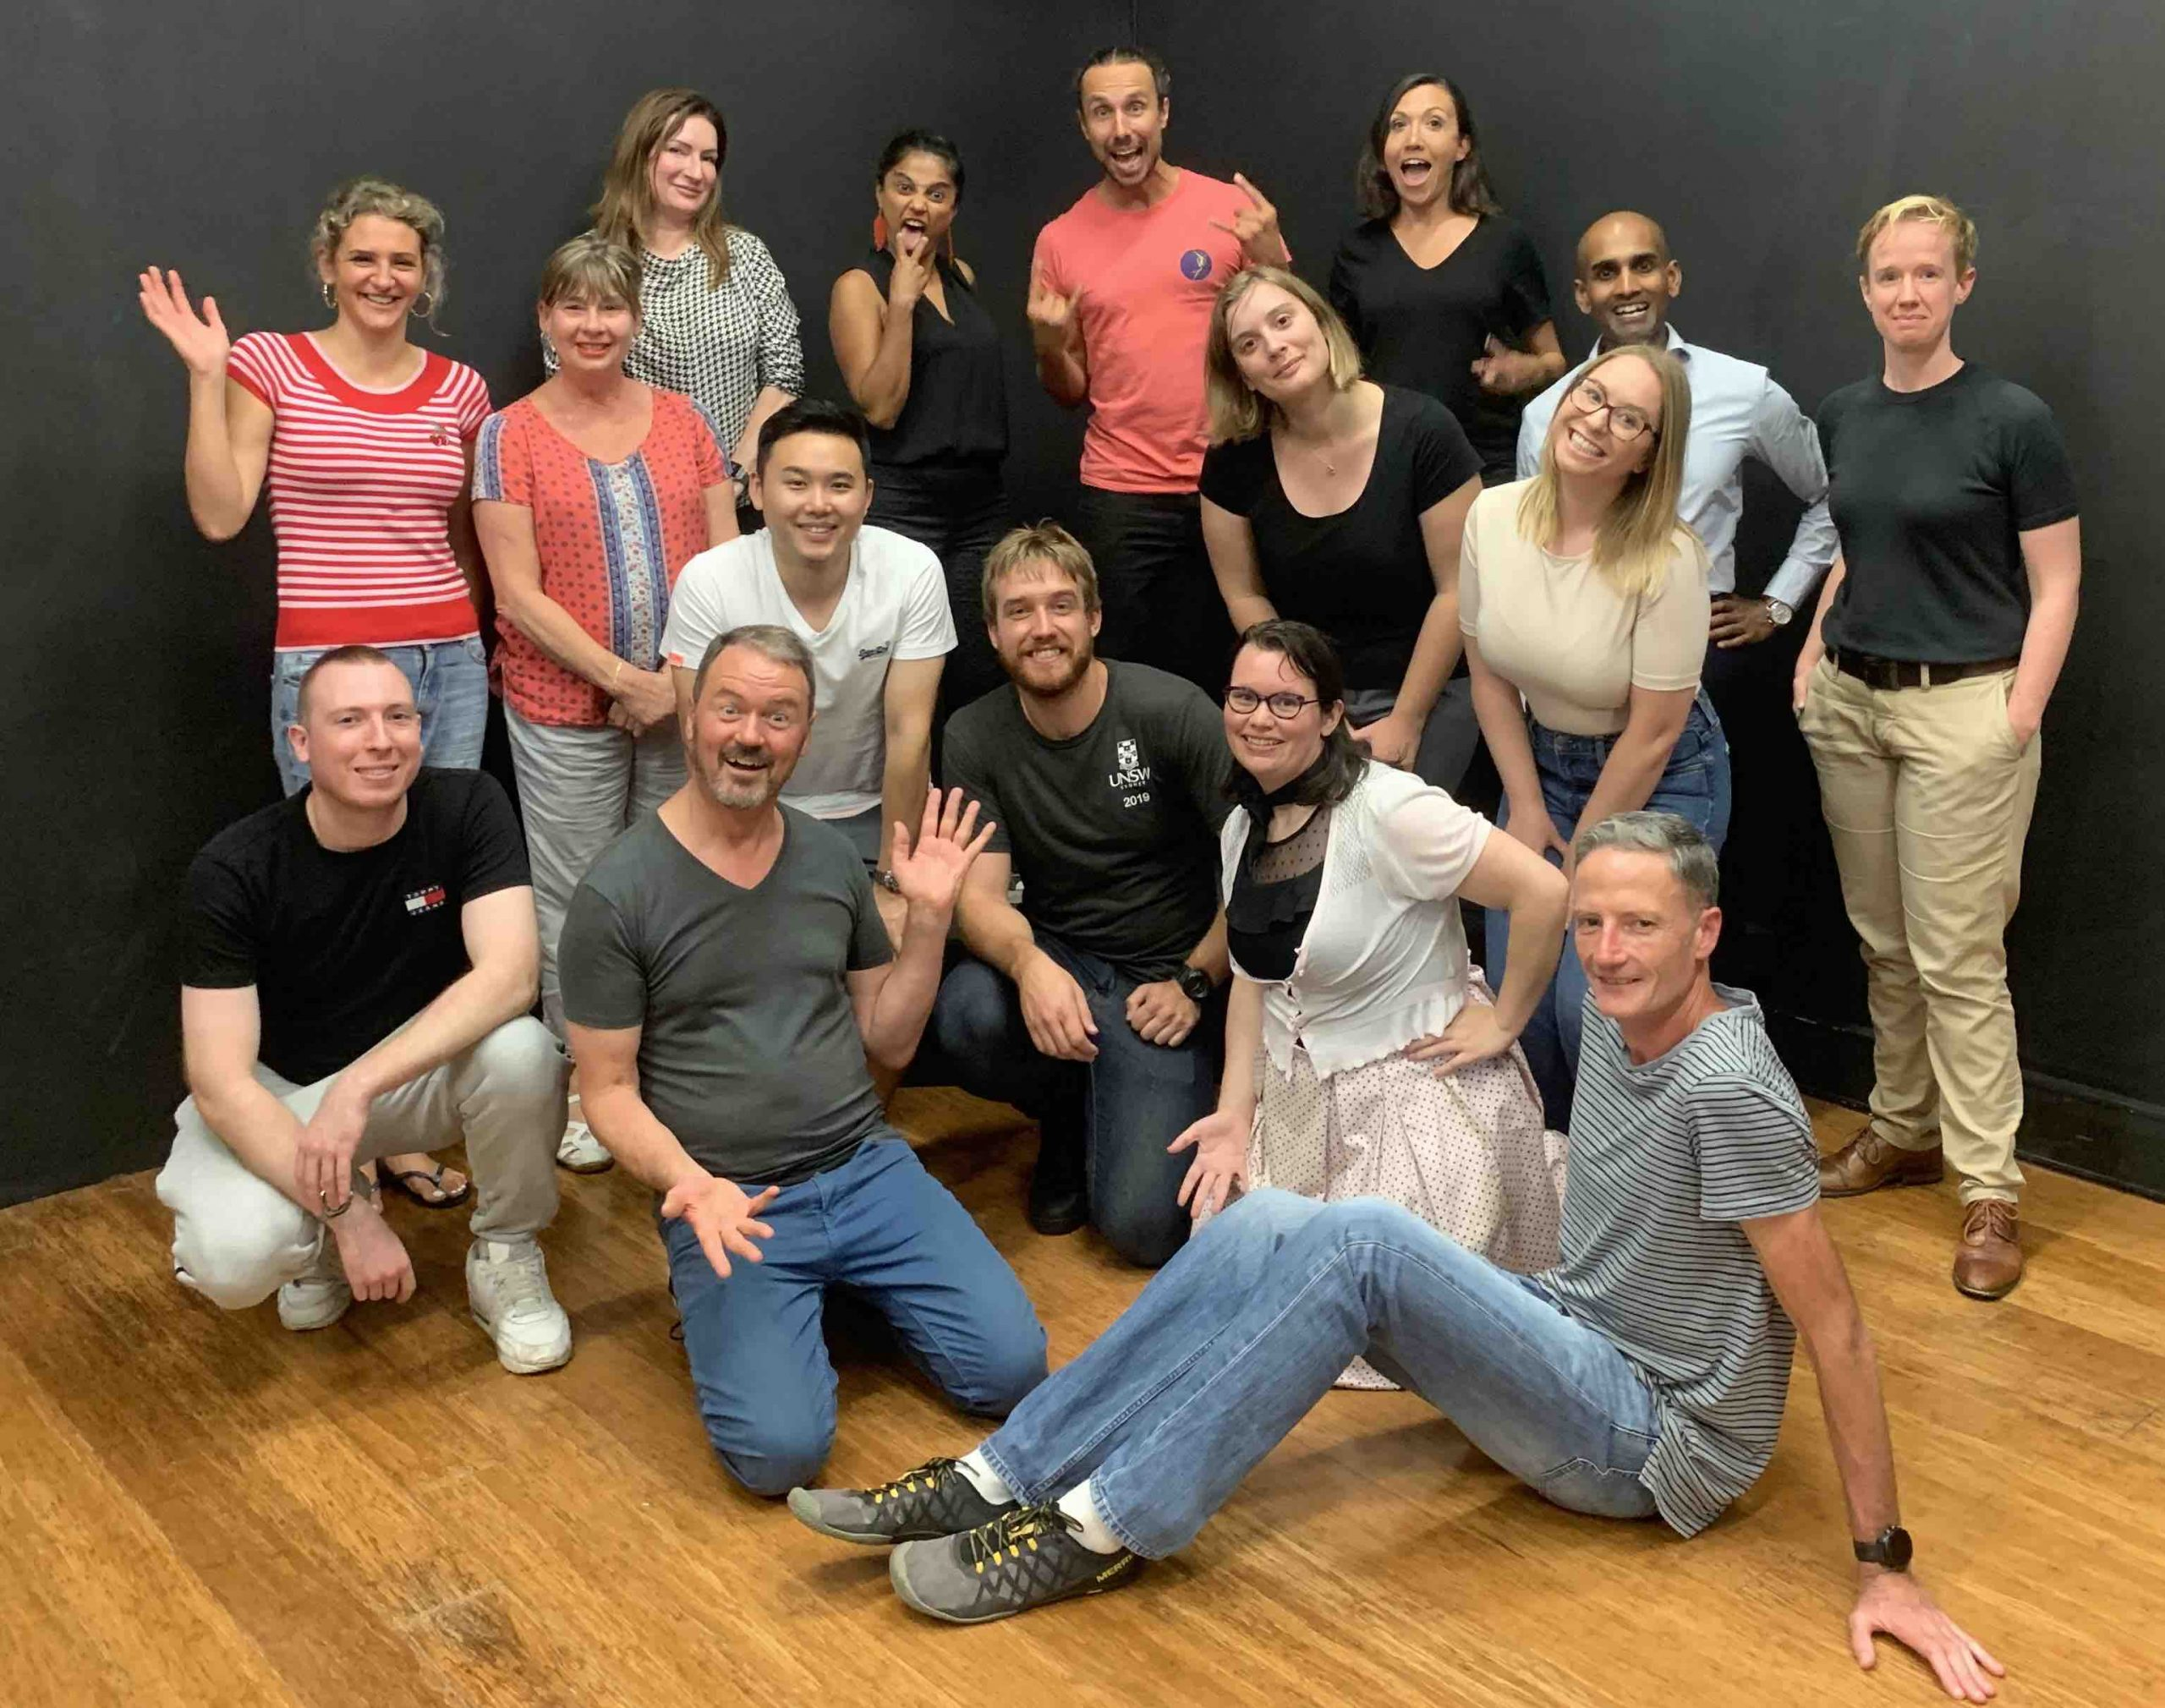 IMPRO FOR BEGINNERS STARTS TUE JUL 13th